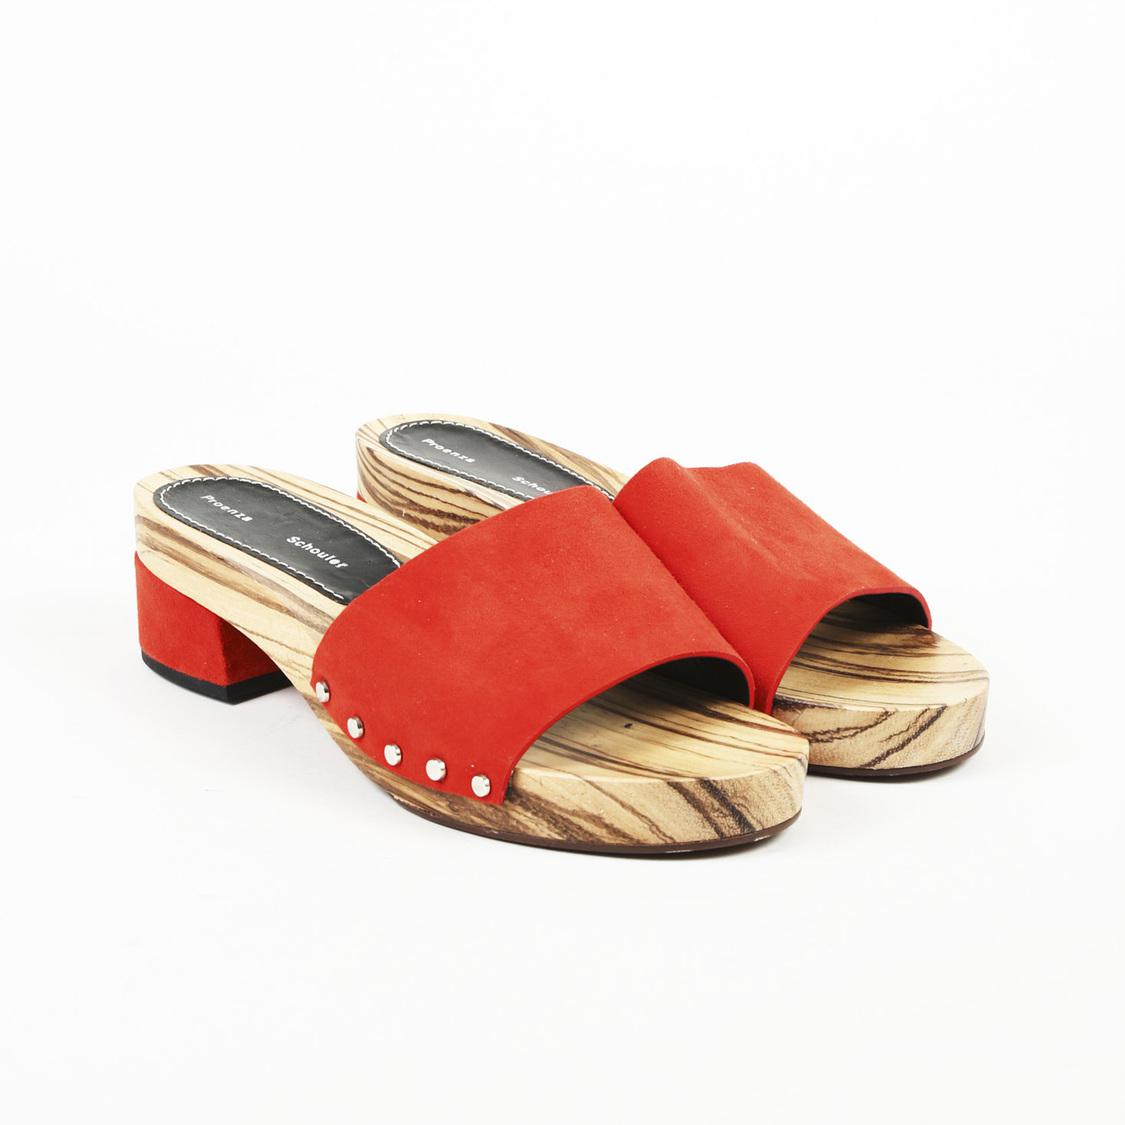 aeb7188cb7a Lyst - Proenza Schouler Suede Slide Sandals in Orange